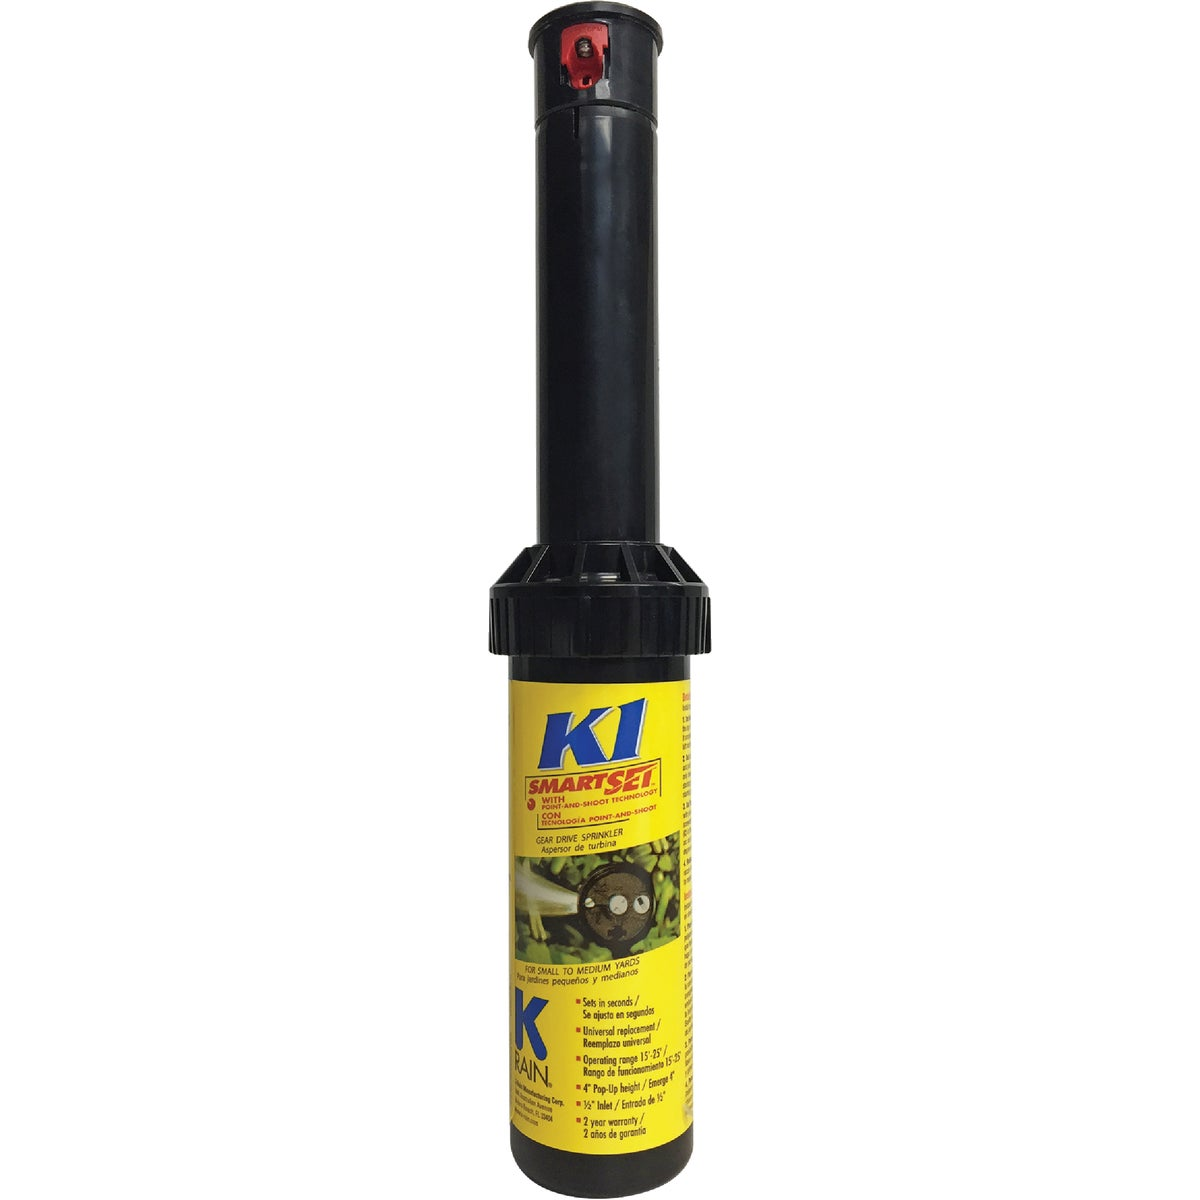 K1 GEAR DRIVE SPRINKLER - 31031 by K Rain Mfg Corp